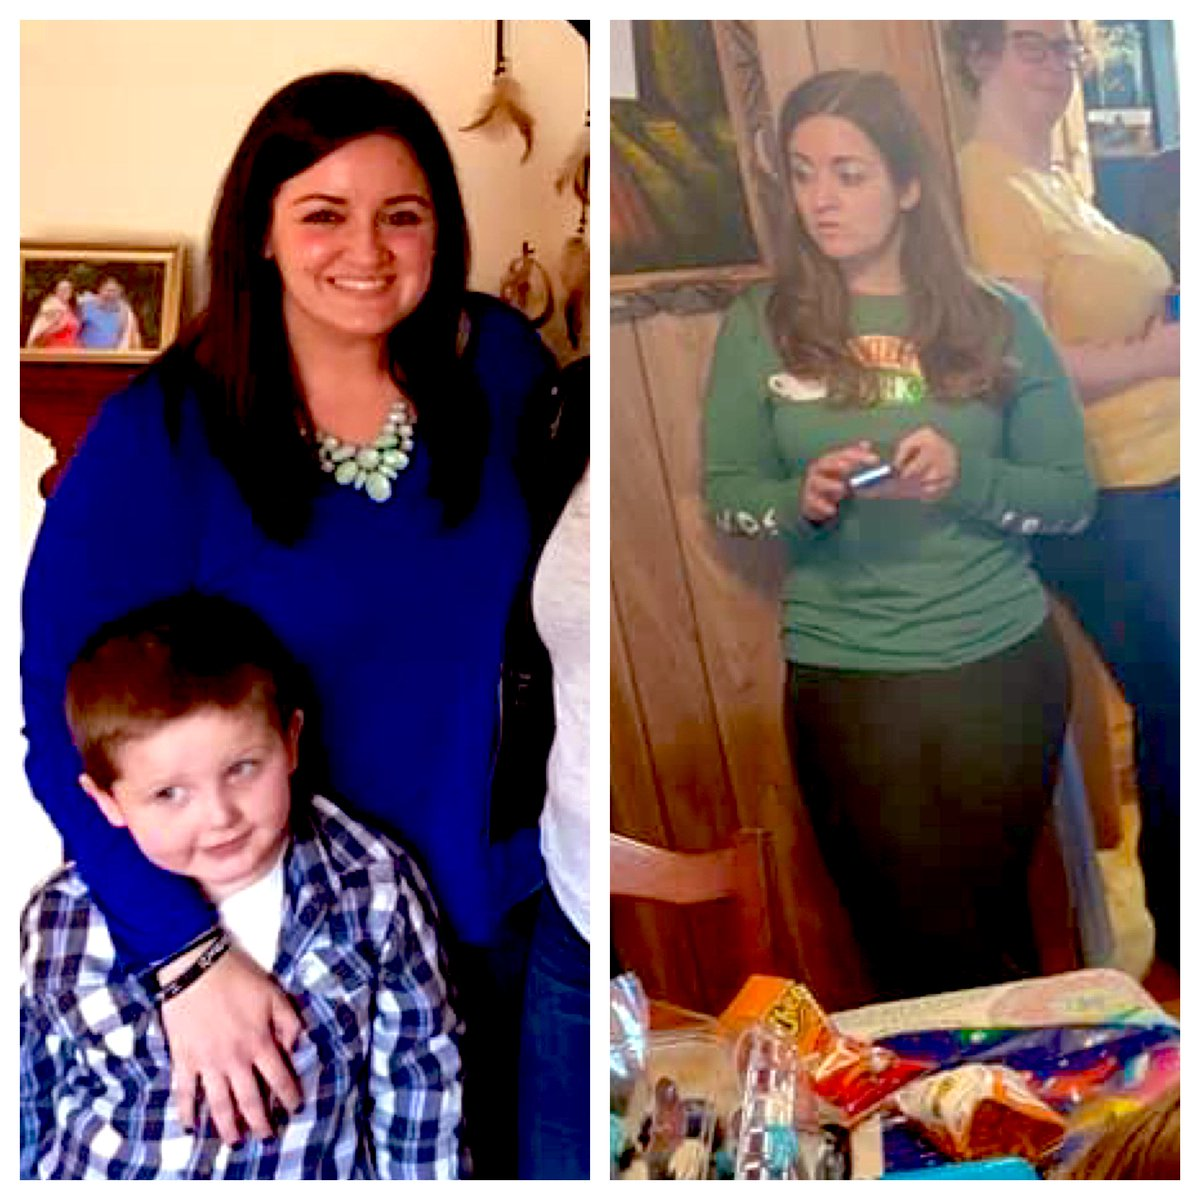 I was having an off day. Then my mom posted the photo on the right from earlier today. Then I remembered this photo from a few years ago (on the left).   This is a reminder that you're doing good sweetie. Keep drinking the water, boxing, and eat that cake at the bday party☺️